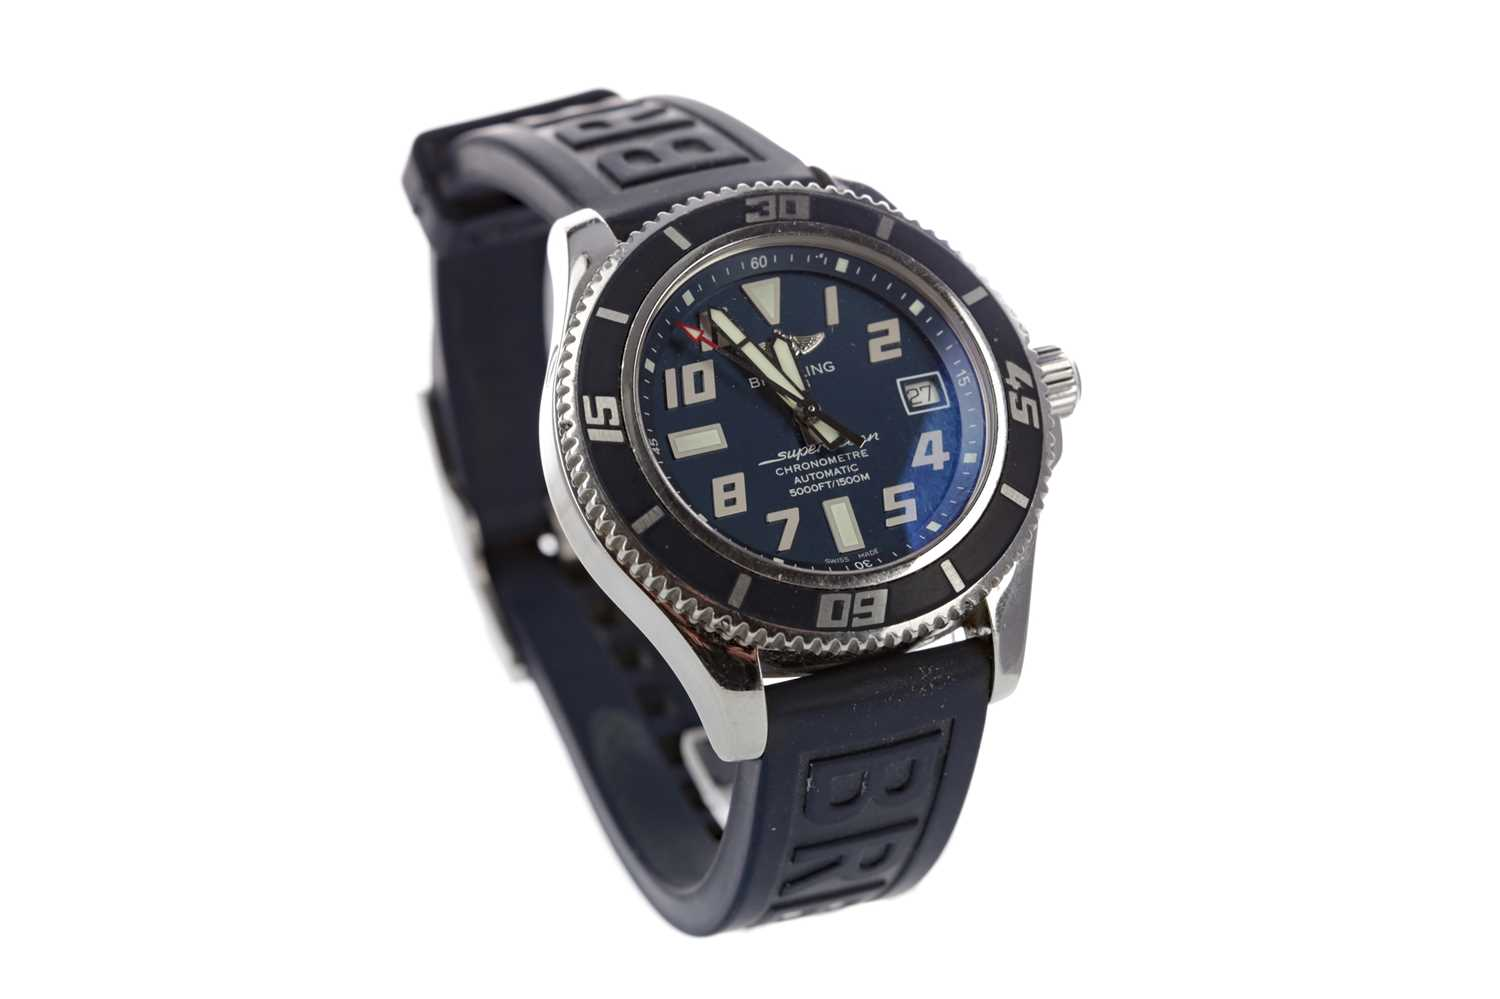 Lot 714 - A GENTLEMAN'S LIMITED EDITION BREITLING SUPEROCEAN CHRONOMETER STAINLESS STEEL AUTOMATIC WRIST WATCH